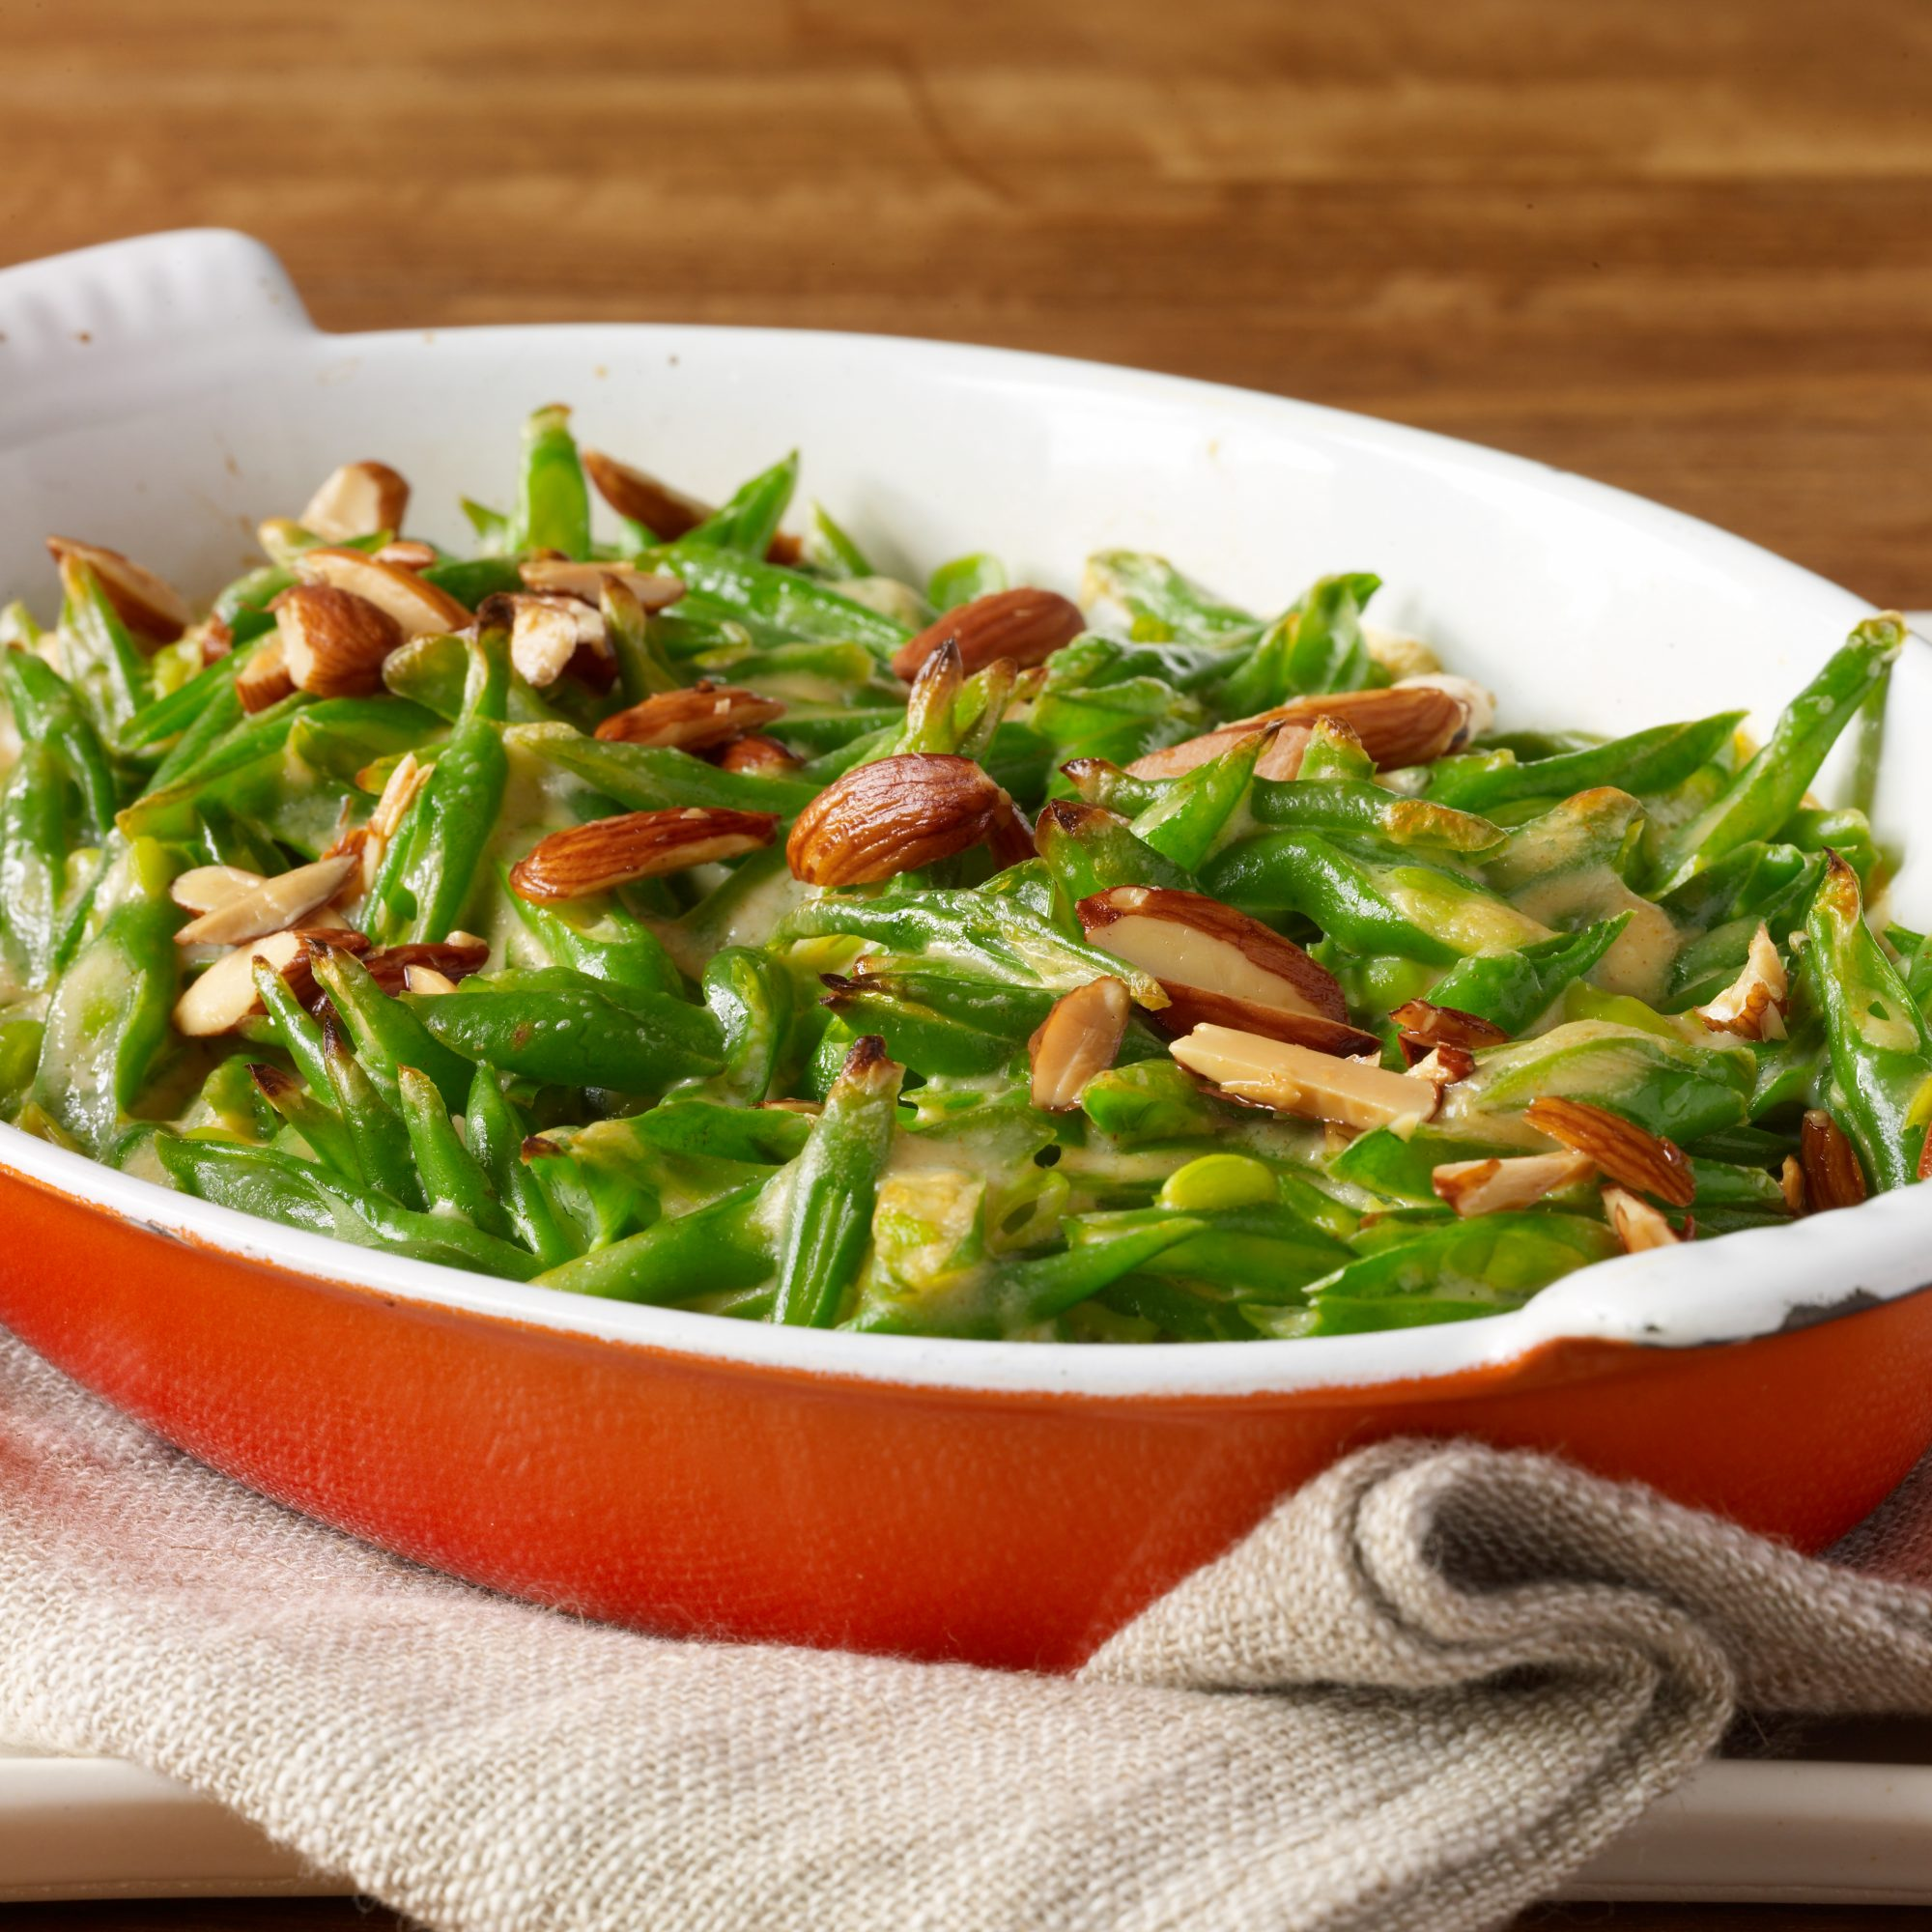 201109-r-green-beans-goat-cheese-almonds-paprika.jpg